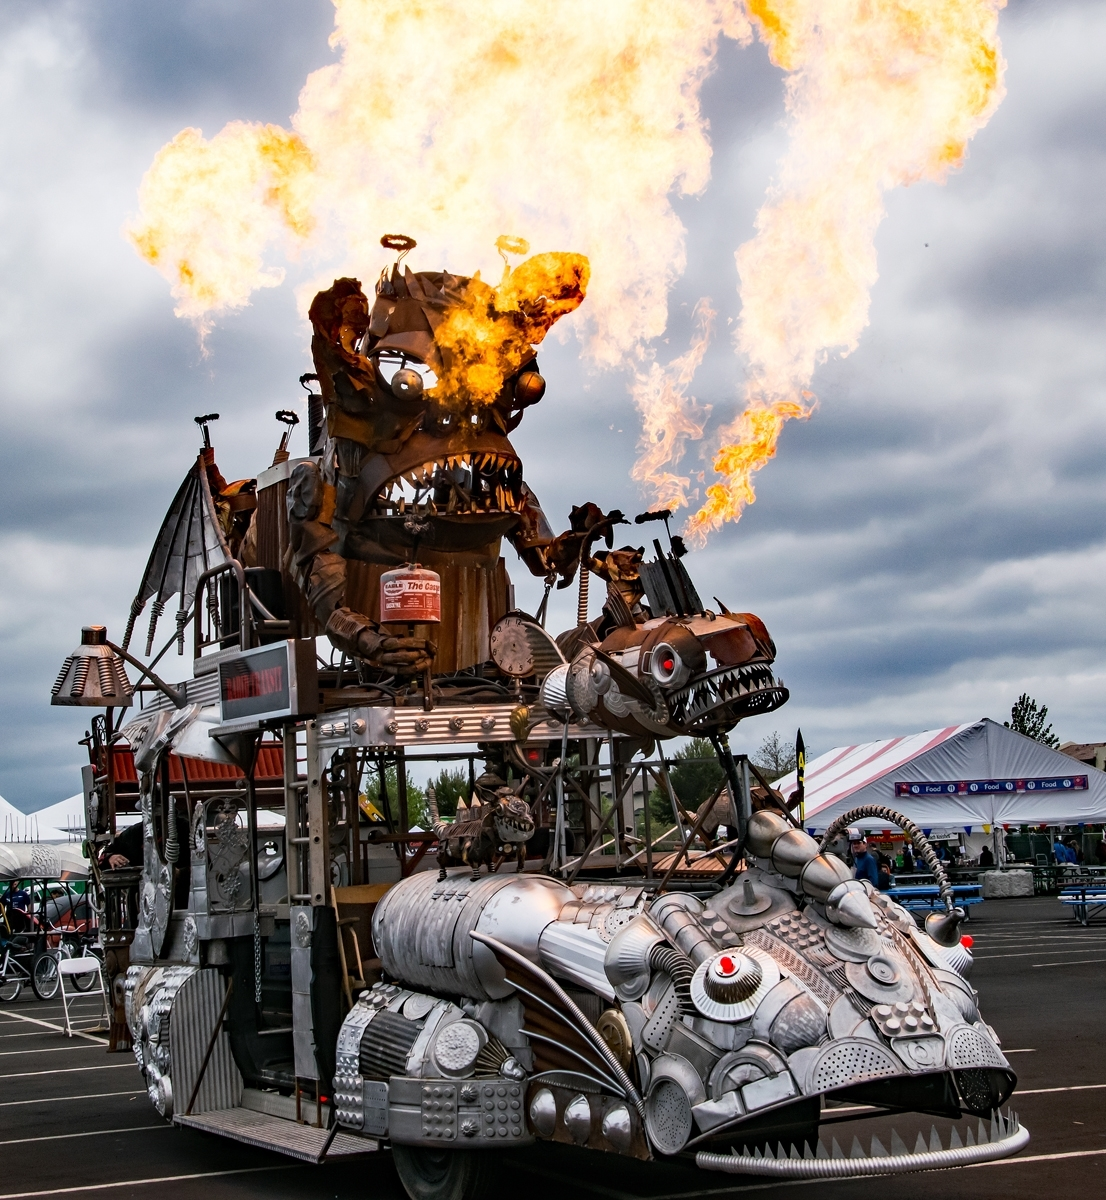 'Maker Fair, San Mateo Calif, Rabid Transit, art car made from recycled and scrap ' (JB 1 Place) by Vicki Anderson - CC